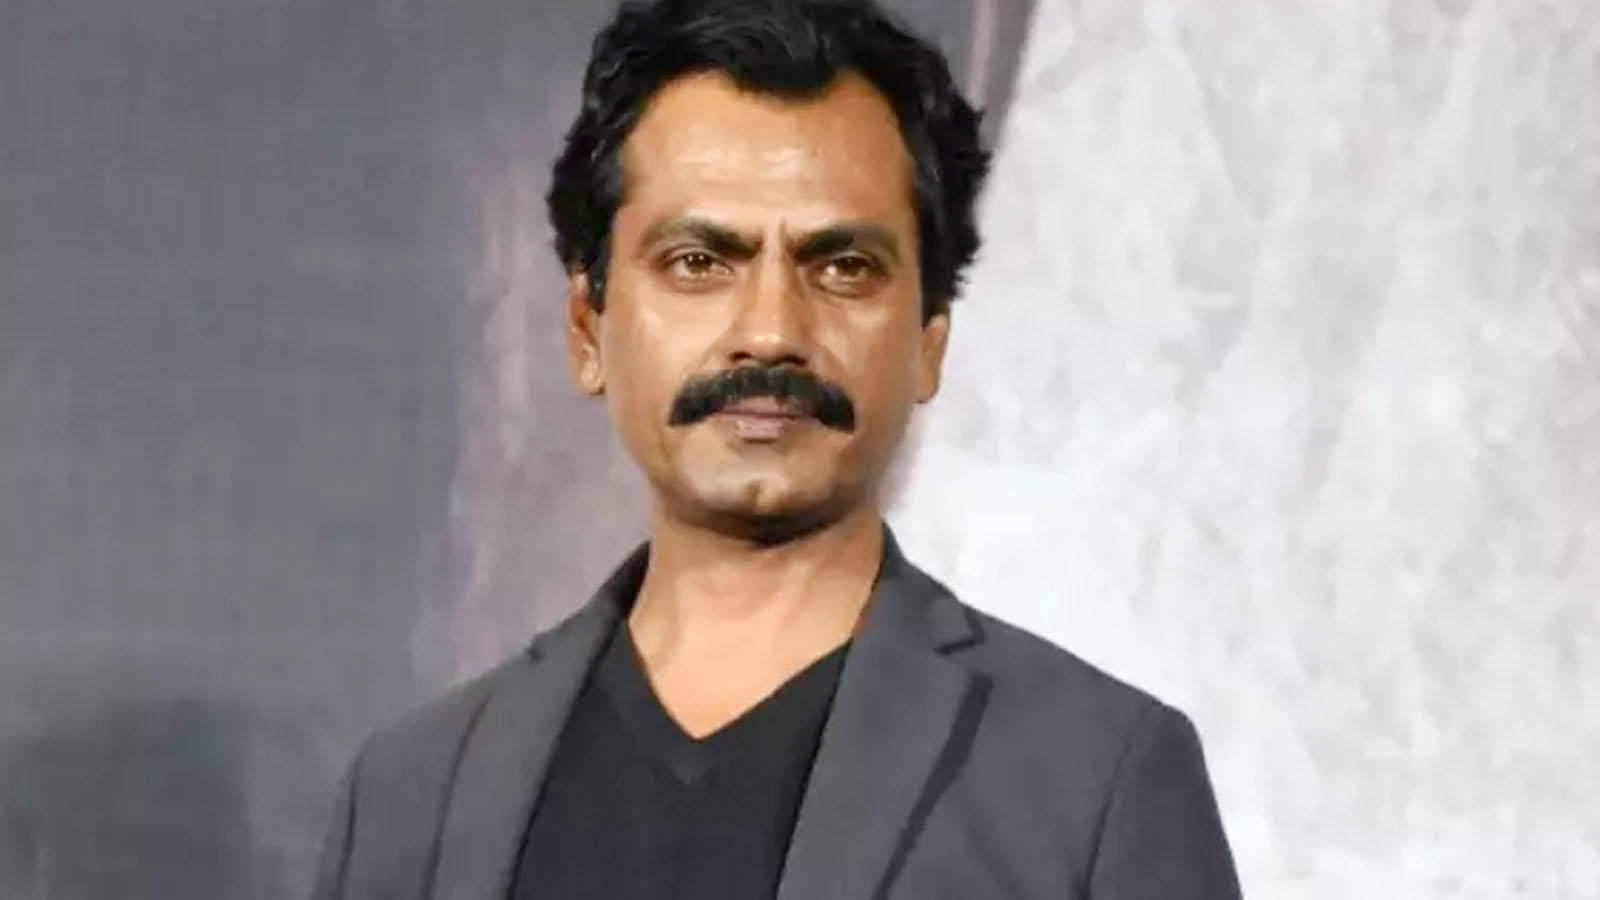 Nawazuddin Siddiqui reacts to celebs posting holiday pics amidst COVID-19 crisis: 'For the sake of humanity. Please don't taunt those who are suffering'   Hindi Movie News – Bollywood – Times of India